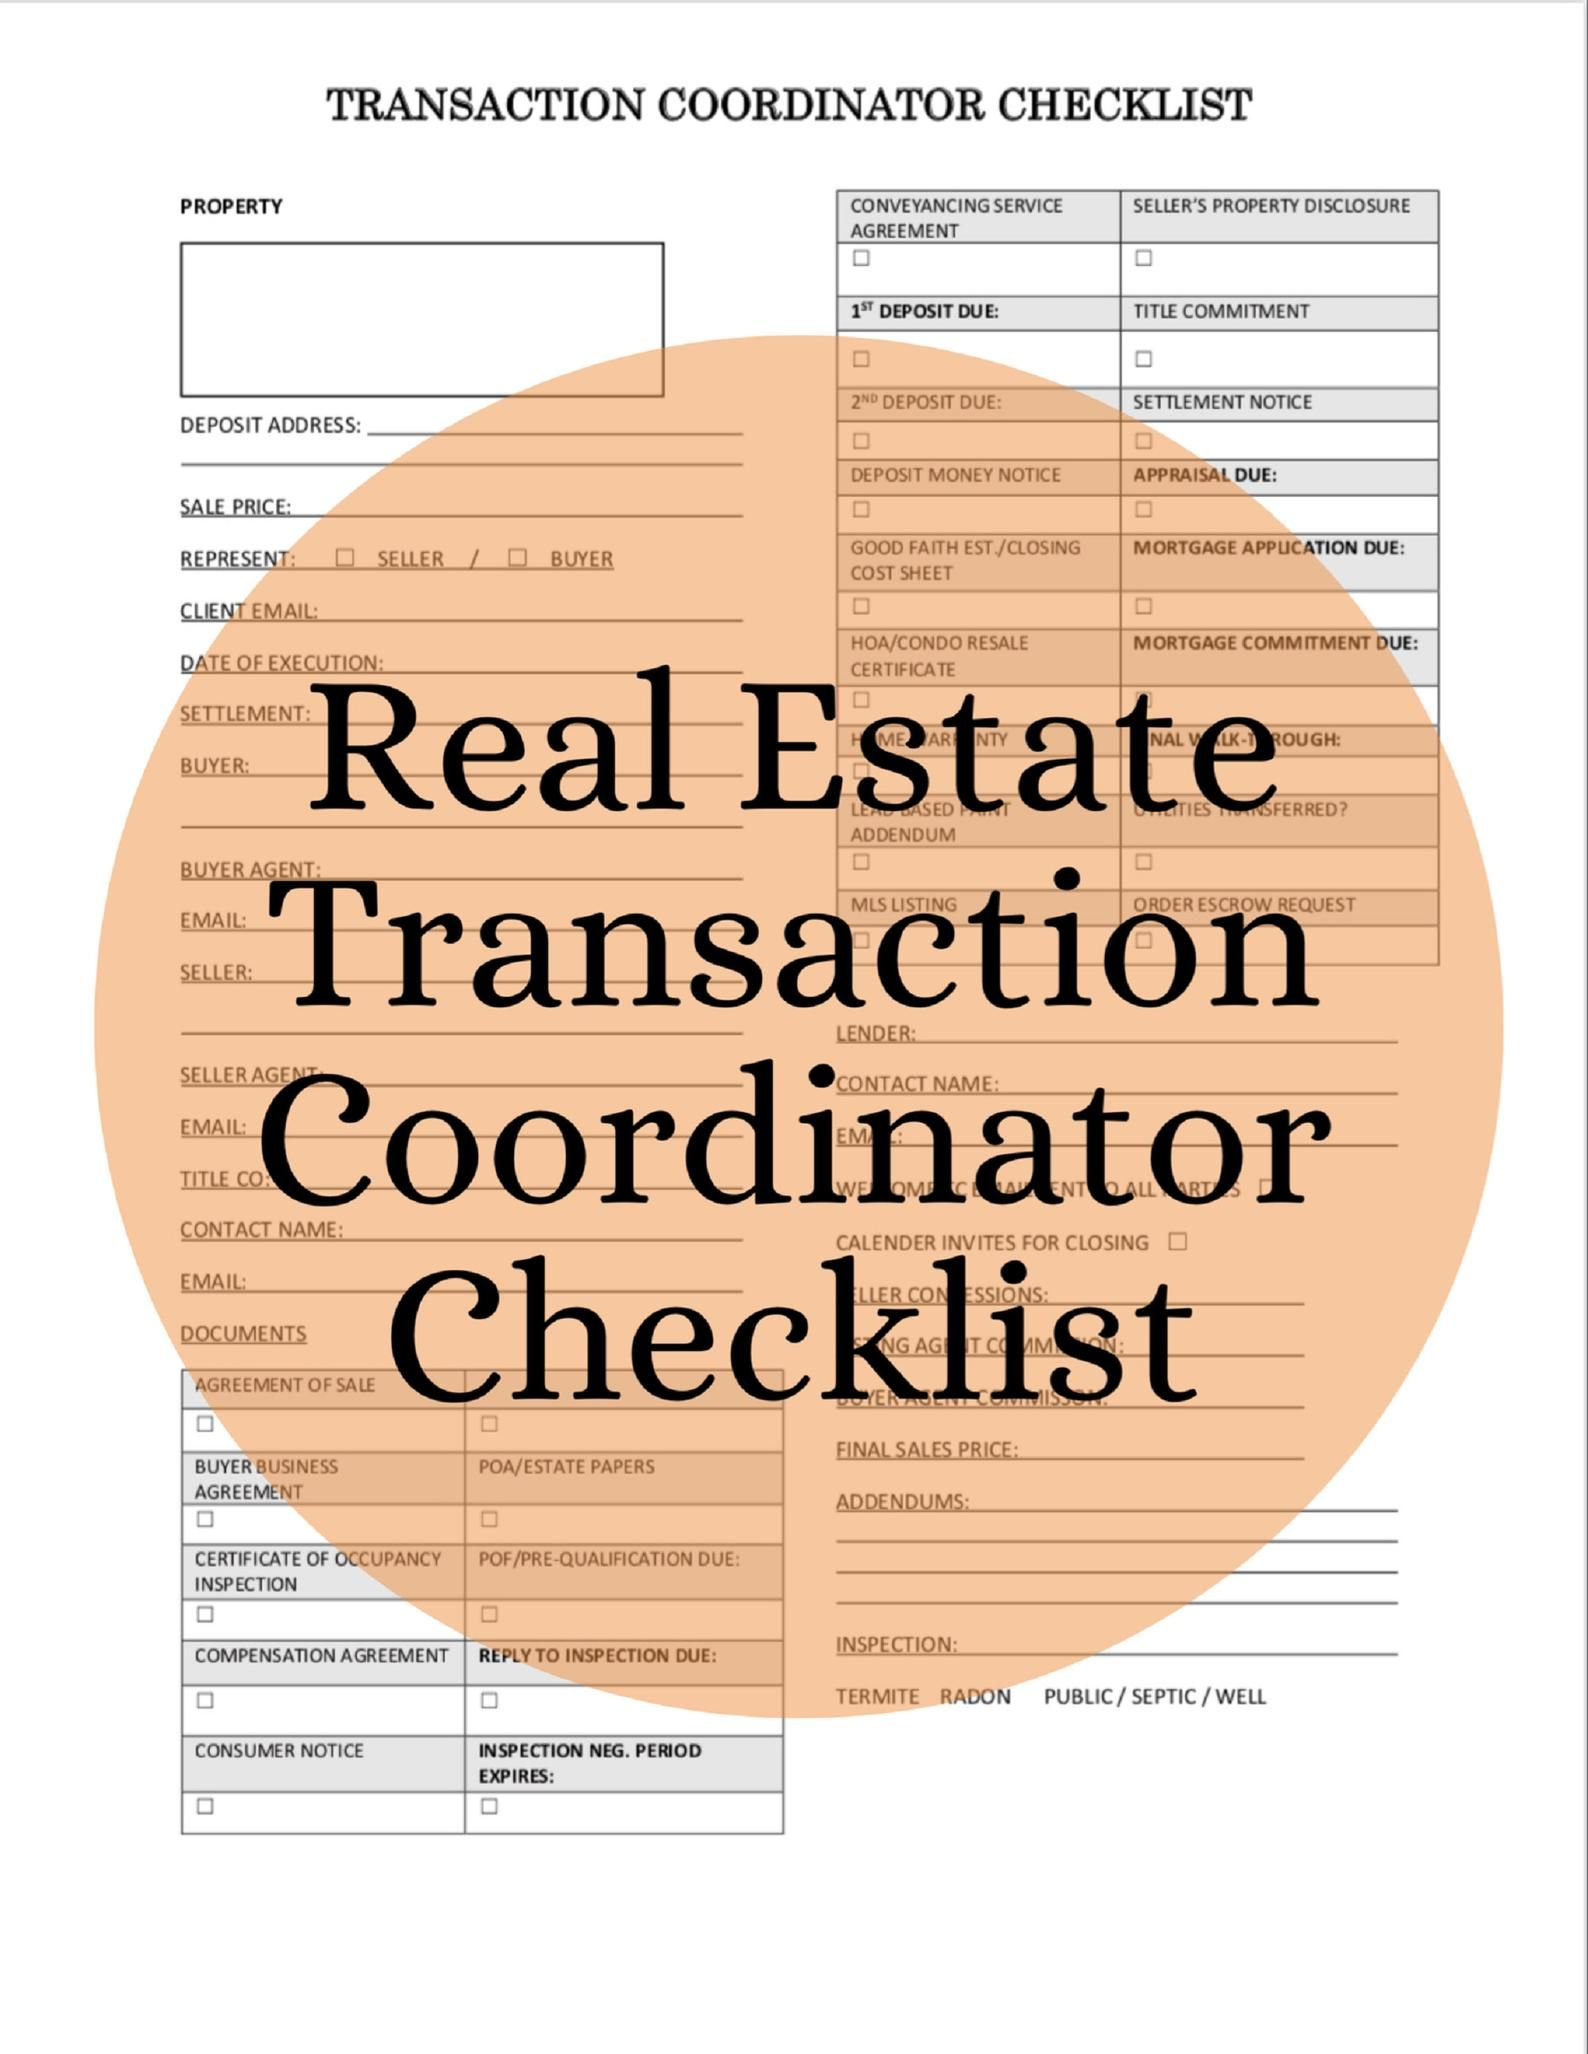 Real Estate Transaction Coordinator Checklist Printable 1 Etsy In 2021 Real Estate Assistant Real Estate Checklist Real Estate Infographic Real estate closing checklist template